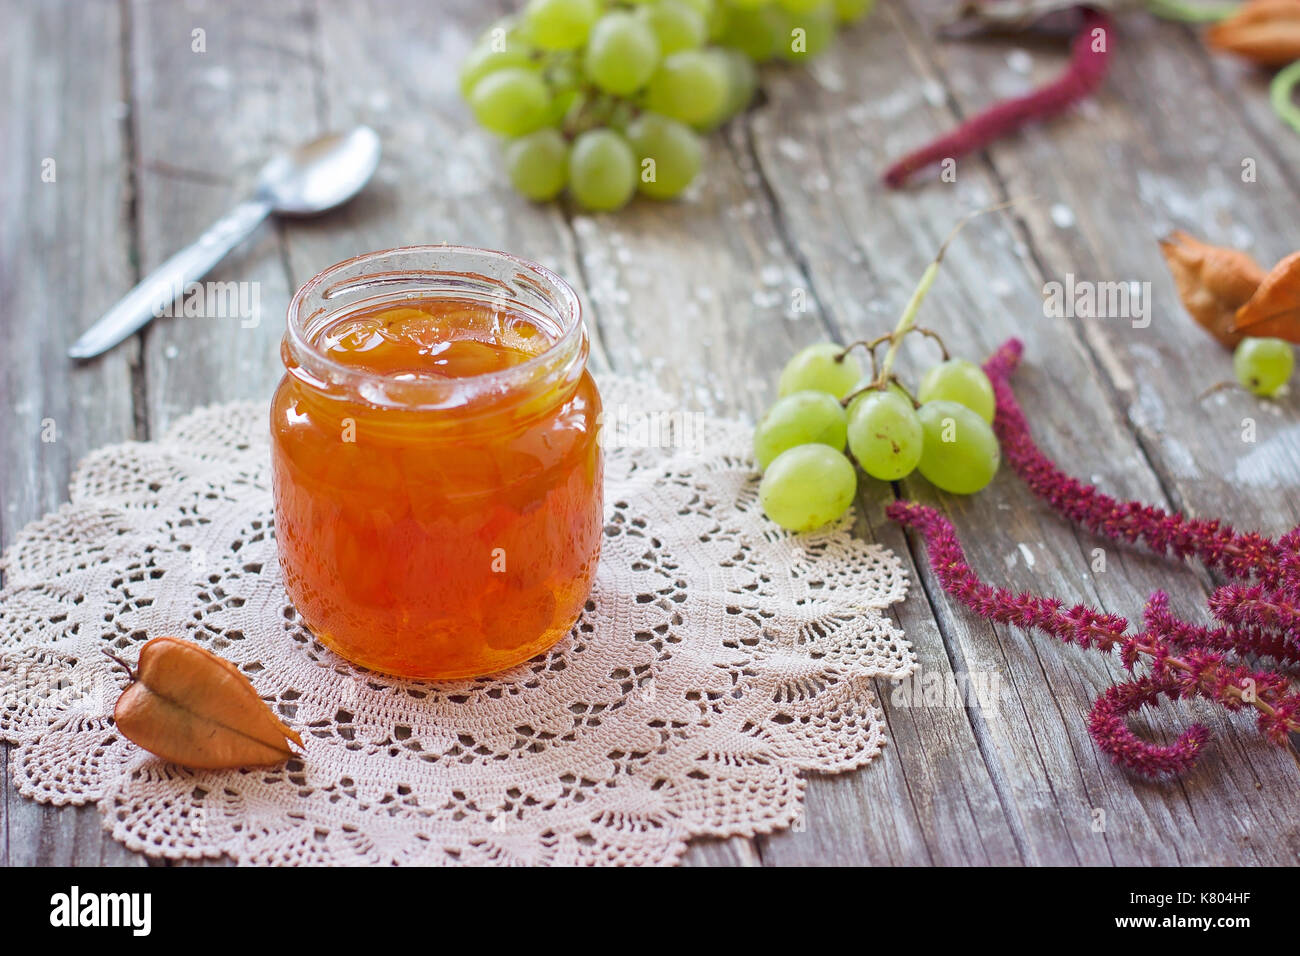 Slatko - preserved white grapes in glass jar, on wooden background; traditional serbian desert of white grapes or white cherries - Stock Image